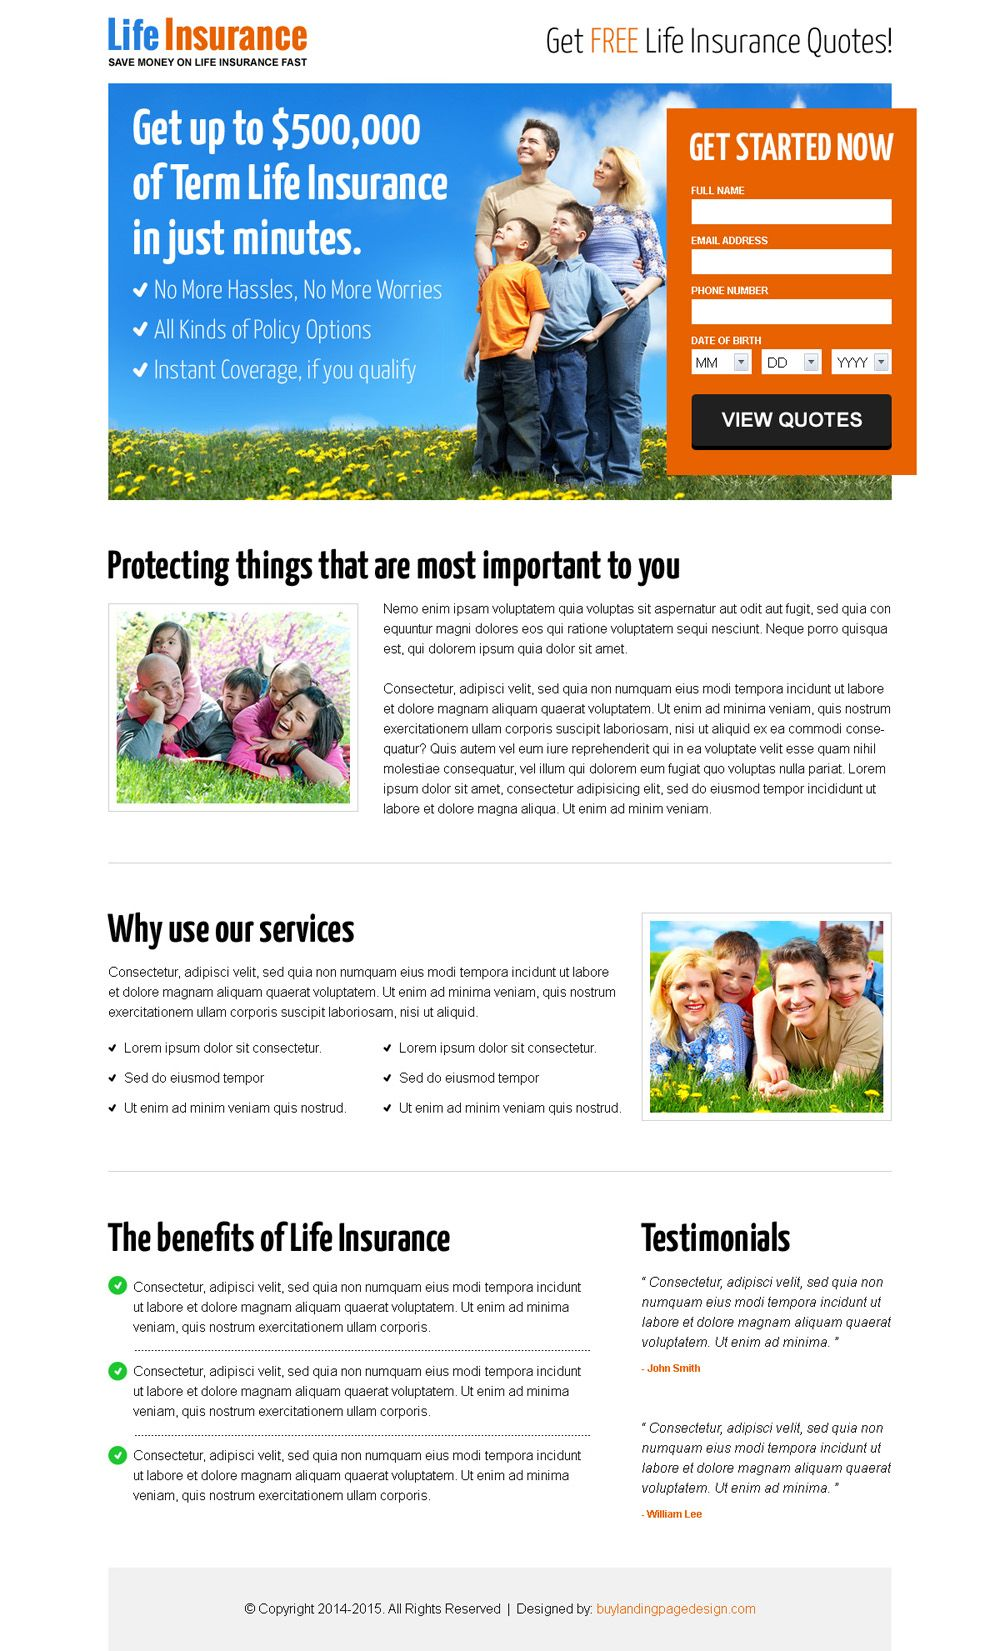 Free Term Life Insurance Quotes Life Insurance Free Quote Lead Capturing Responsive Landing Page